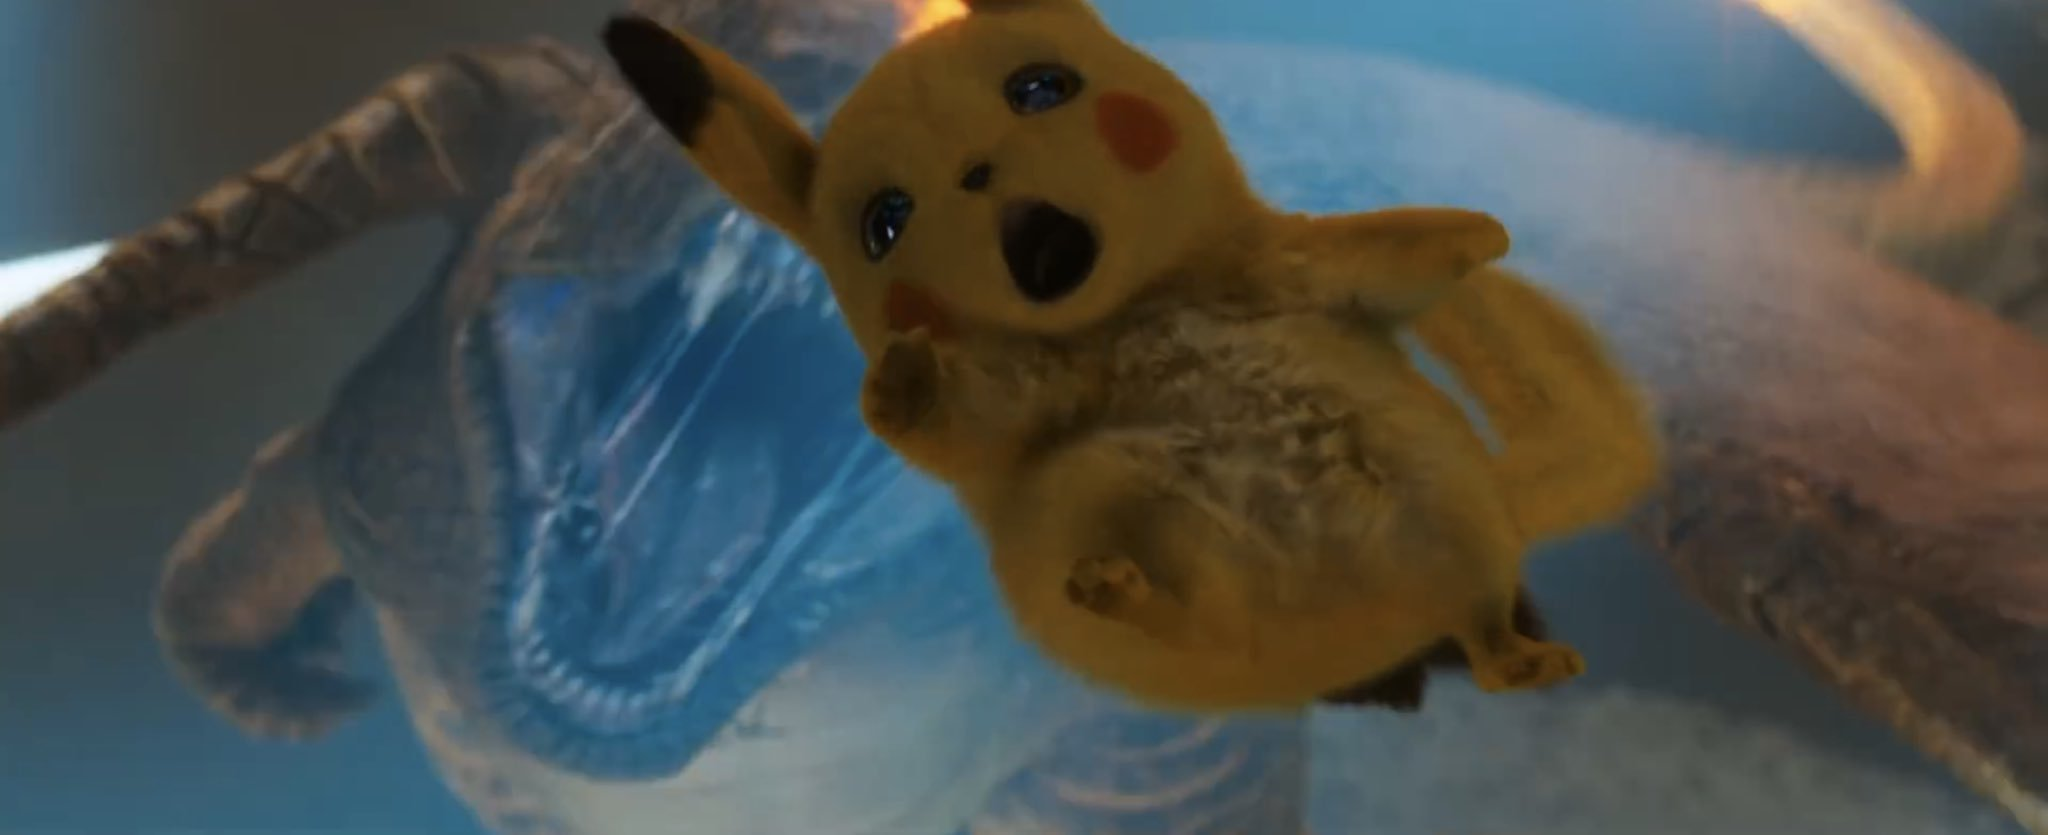 Pikachu And Charizard Detective Pikachu Know Your Meme